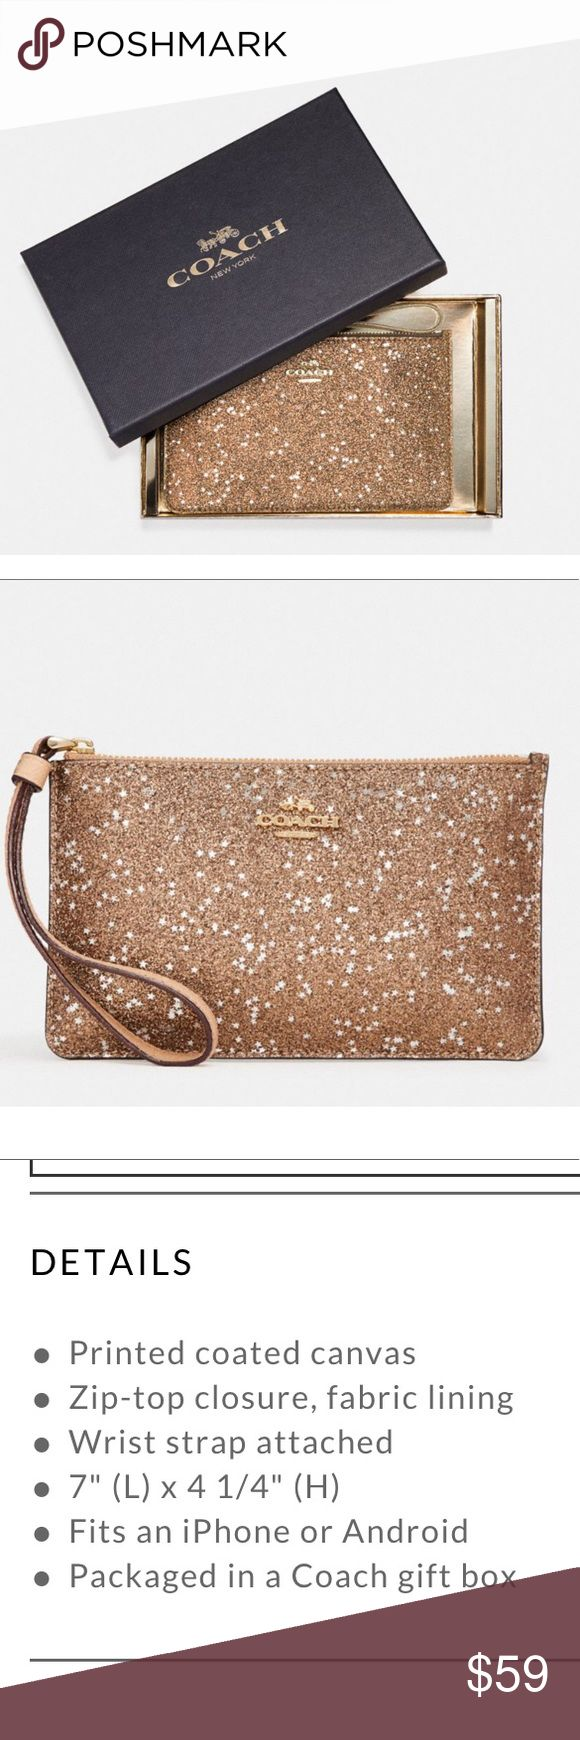 Coach wristlet with gift box Stunning Coach gold wristlet in gift box ready for giving!! See last pic for description Coach Bags Clutches & Wristlets